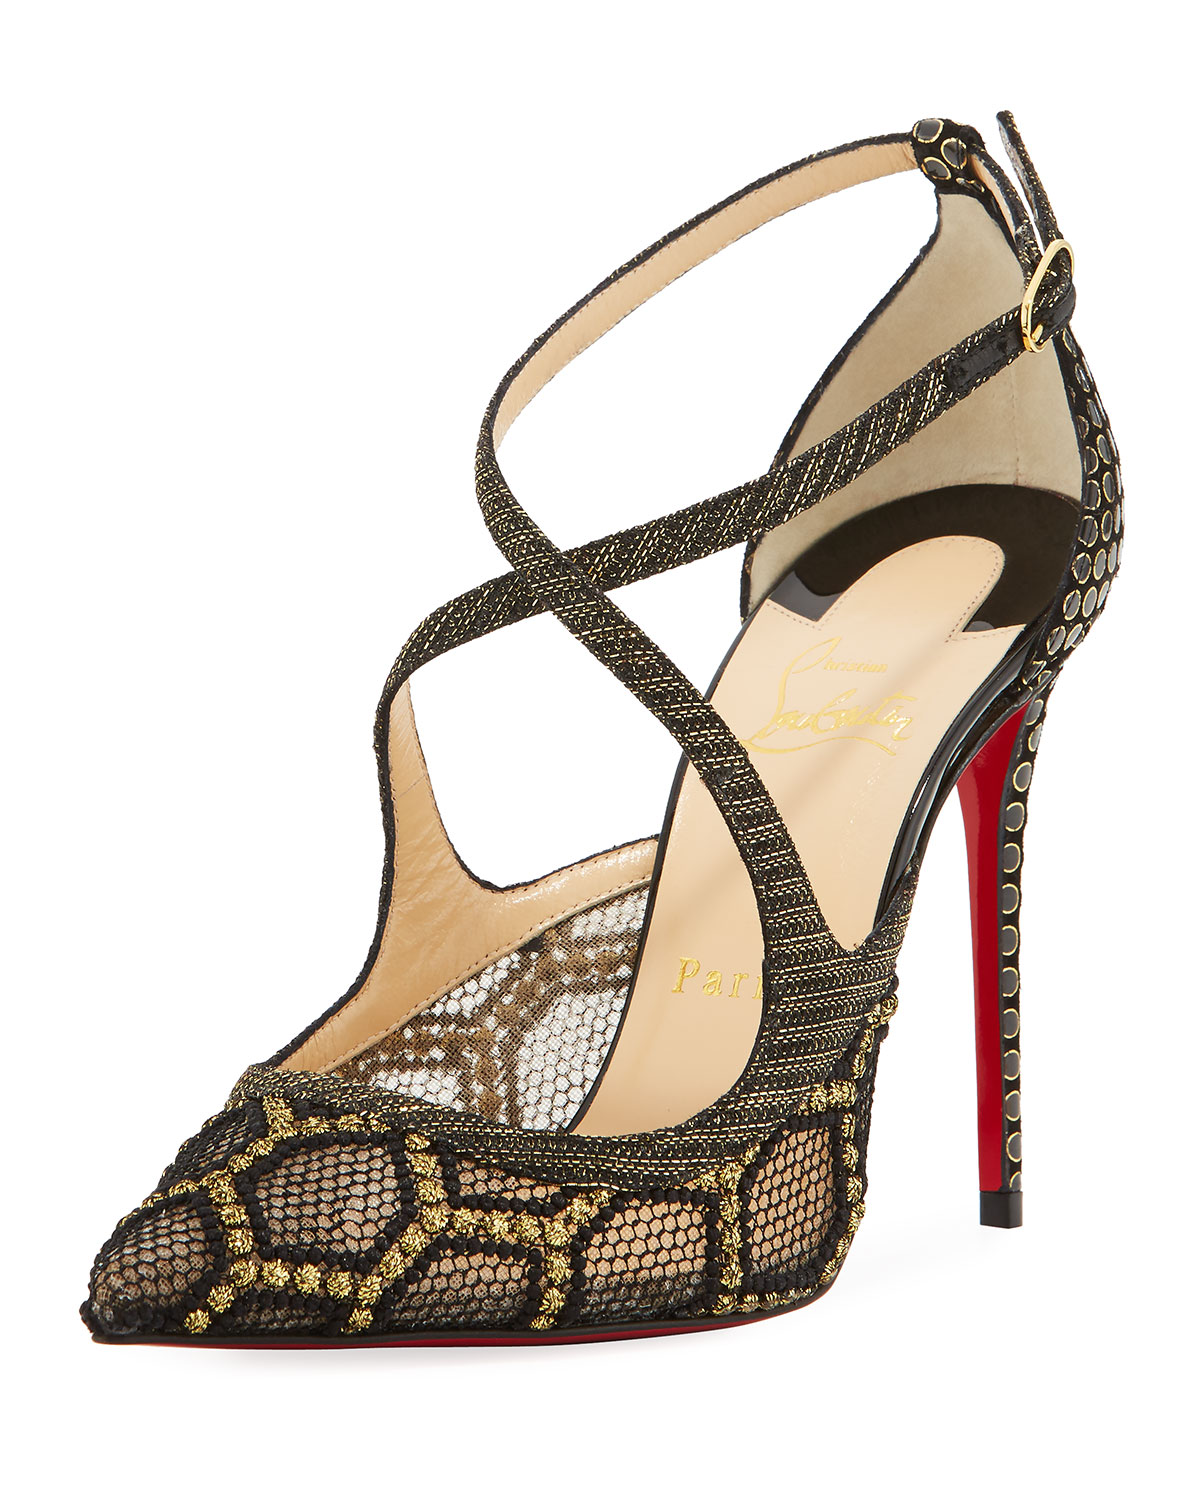 18e620b8279 Christian Louboutin Twistissima Crisscross Red Sole Pump